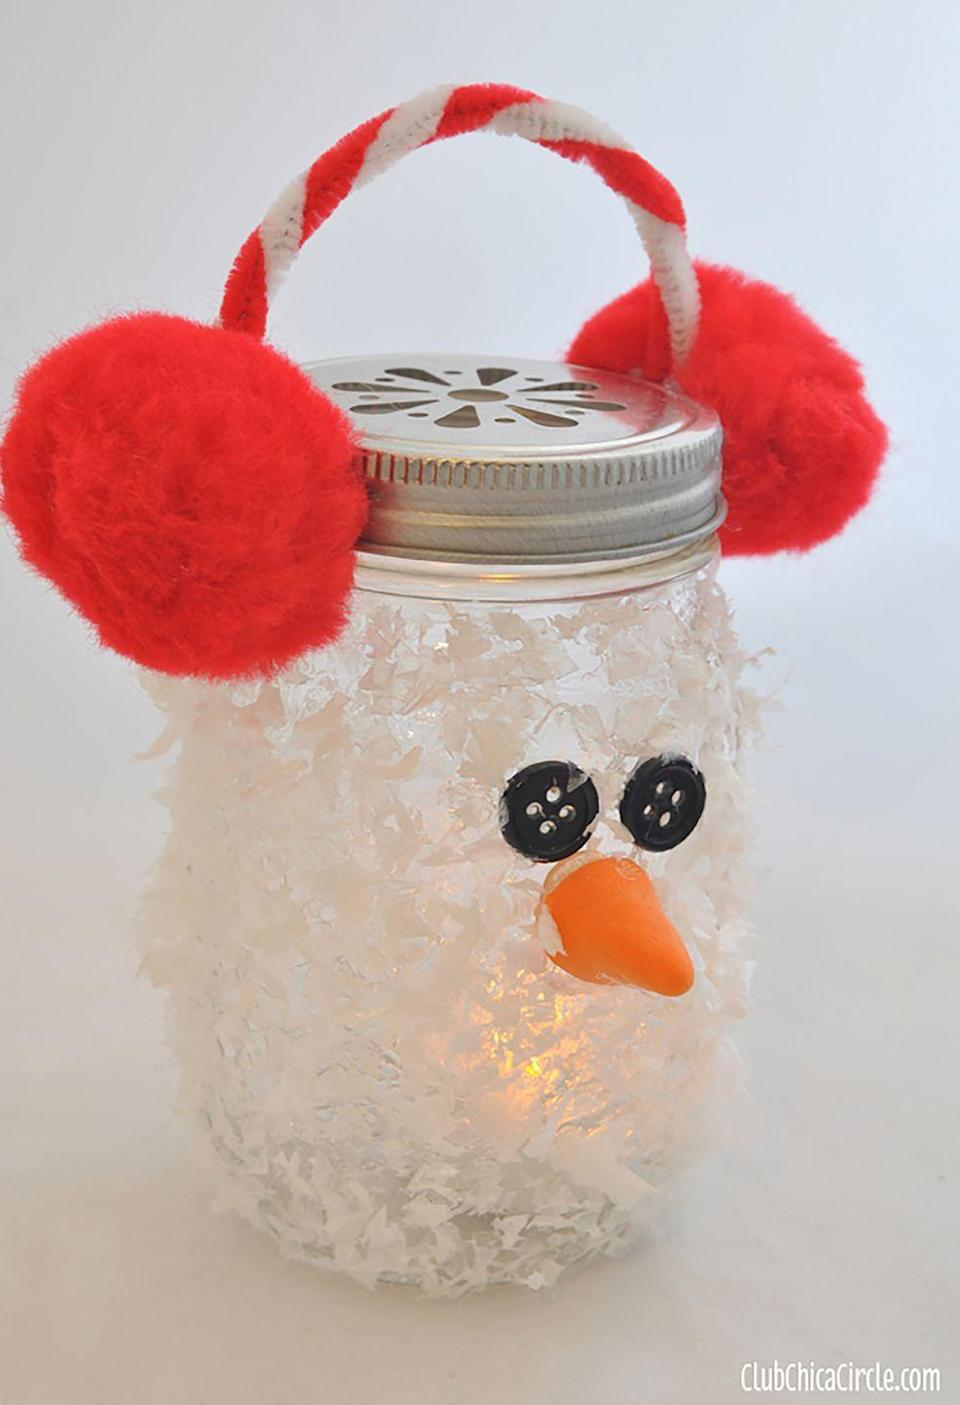 """<p>Rather than decorating the inside of a Mason jar, this craft calls for adhering <a href=""""https://www.amazon.com/FloraCraft-4-Liters-Plastic-Snow/dp/B000XZY0OY/?tag=syn-yahoo-20&ascsubtag=%5Bartid%7C10050.g.2132%5Bsrc%7Cyahoo-us"""" rel=""""nofollow noopener"""" target=""""_blank"""" data-ylk=""""slk:faux snow"""" class=""""link rapid-noclick-resp"""">faux snow</a>, buttons, and a nose made of air-dry clay to the outside. The earmuffs are made with a pipe cleaner and pom poms. </p><p><strong>Get the tutorial at <a href=""""http://club.chicacircle.com/snowman-mason-jar-luminary-ornament-and-decoart-giveaway/"""" rel=""""nofollow noopener"""" target=""""_blank"""" data-ylk=""""slk:Club Chica Circle"""" class=""""link rapid-noclick-resp"""">Club Chica Circle</a>.</strong></p><p><a class=""""link rapid-noclick-resp"""" href=""""https://www.amazon.com/FloraCraft-4-Liters-Plastic-Snow/dp/B000XZY0OY/?tag=syn-yahoo-20&ascsubtag=%5Bartid%7C10050.g.2132%5Bsrc%7Cyahoo-us"""" rel=""""nofollow noopener"""" target=""""_blank"""" data-ylk=""""slk:SHOP ARTIFICIAL SNOW"""">SHOP ARTIFICIAL SNOW</a></p>"""